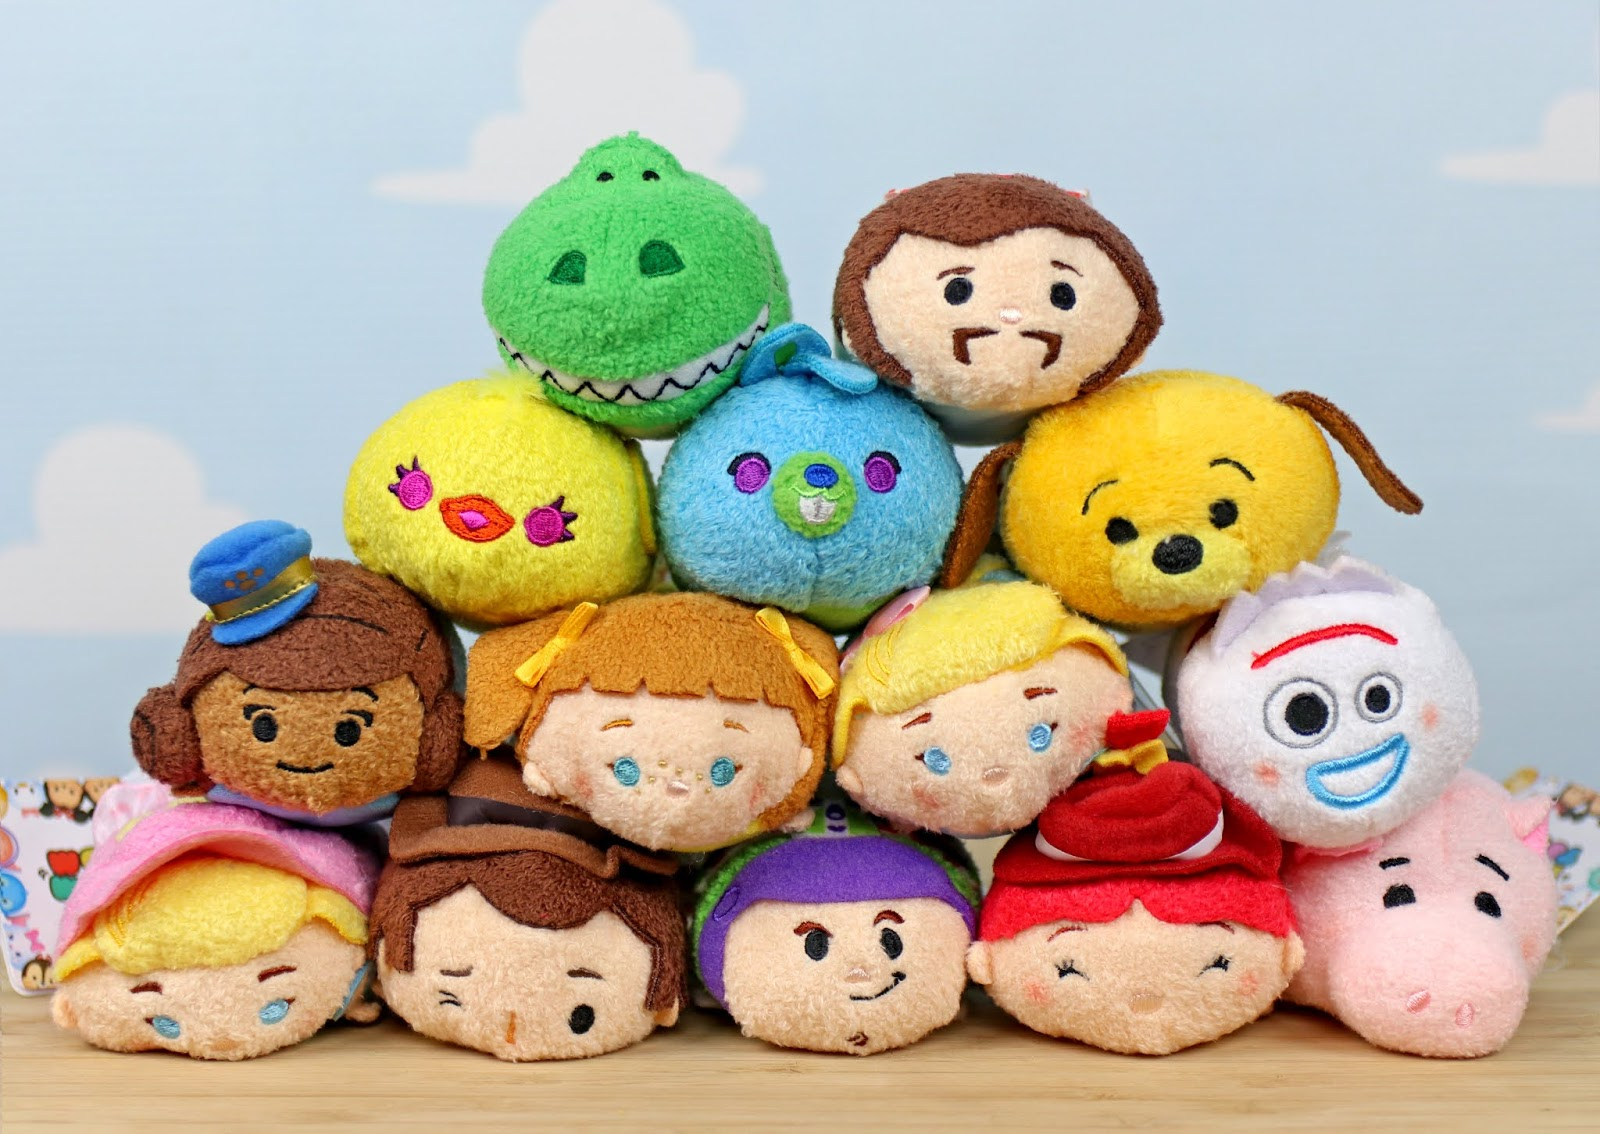 toy story 4 tsum tsums complete